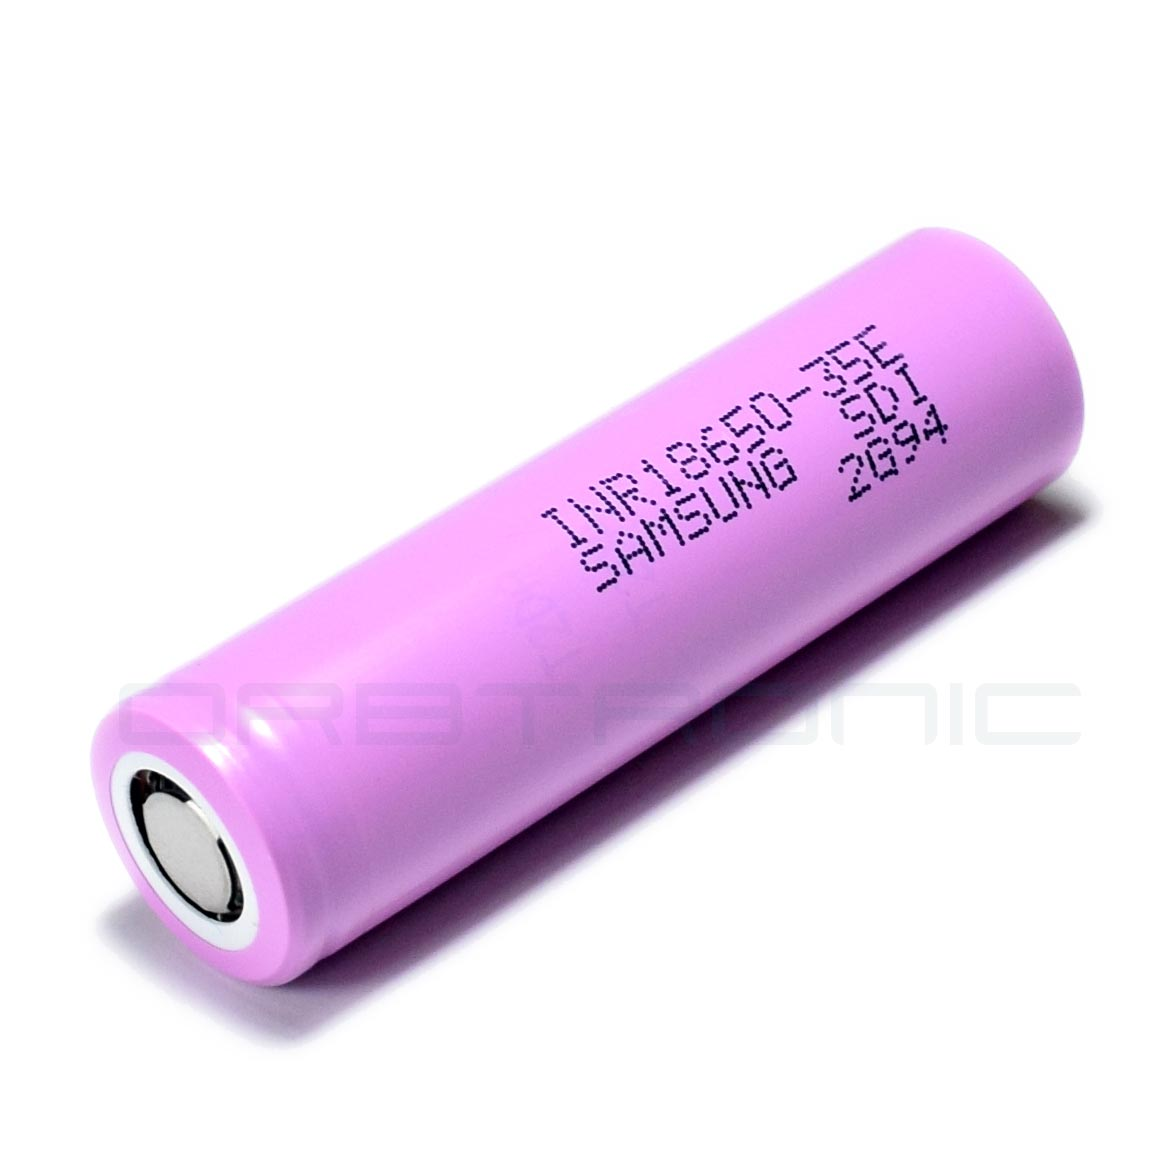 Samsung 35e 3500mah 18650 Flat Top Battery Protection Circuit For Led Torch Sanyo Cell